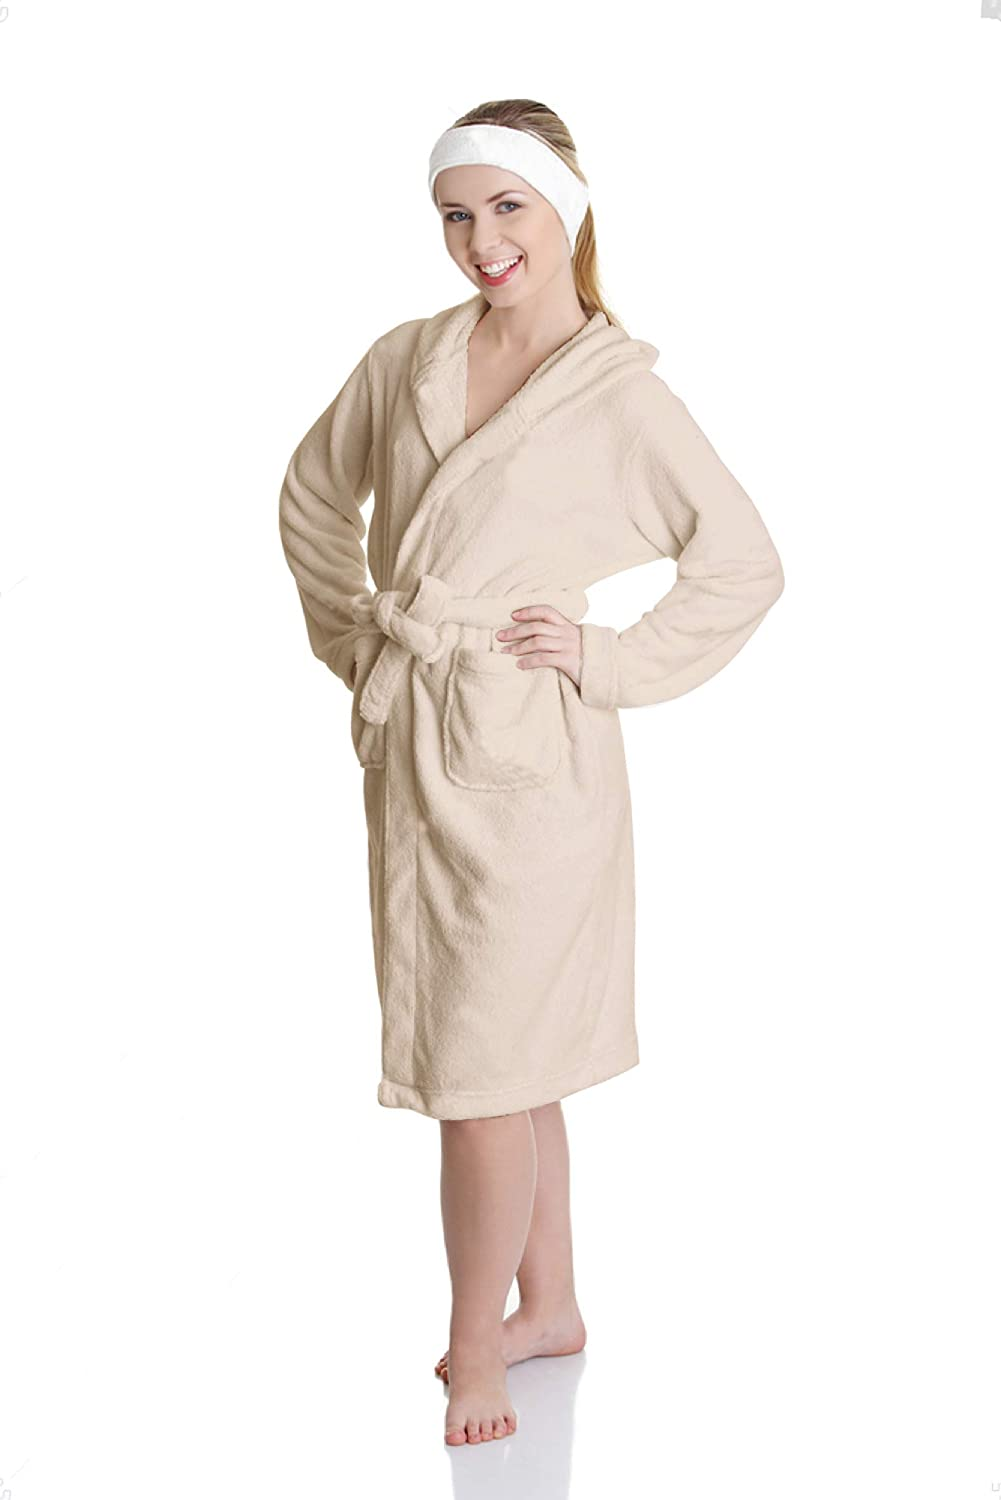 Sunshine Linens Shawl Men /& Women Robe Terry Towelling 100/% Cotton Highly Absorbent Super Soft Dressing Gown for Shower Spa Hotel Bathrobe